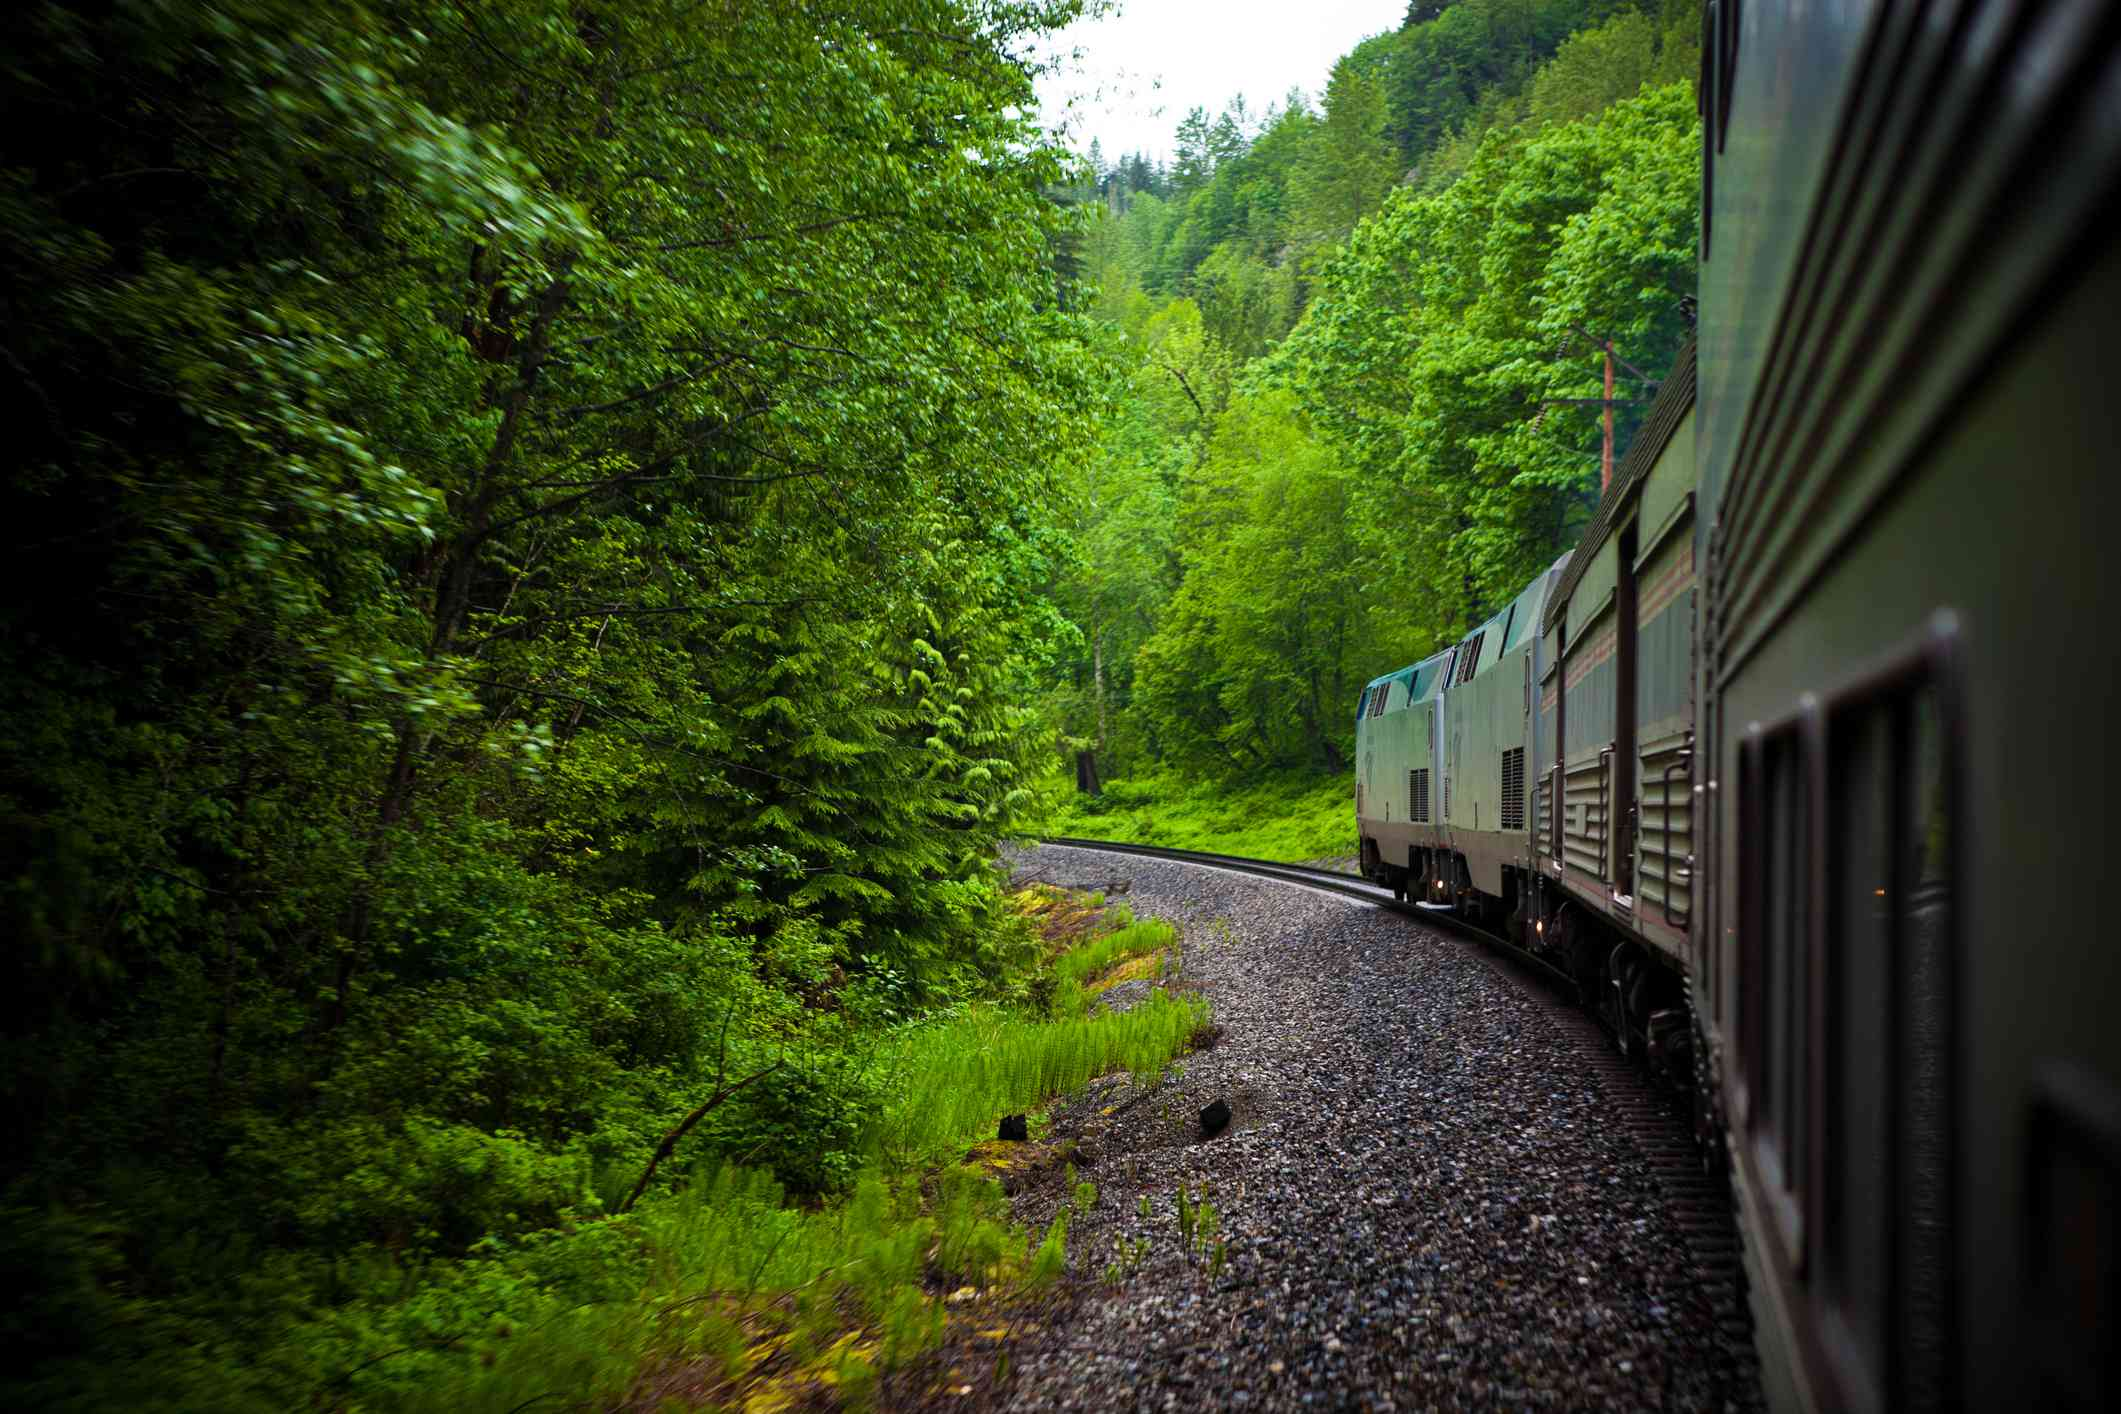 The Empire Builder train in Glacier National Park with green trees on both sides of the tracks